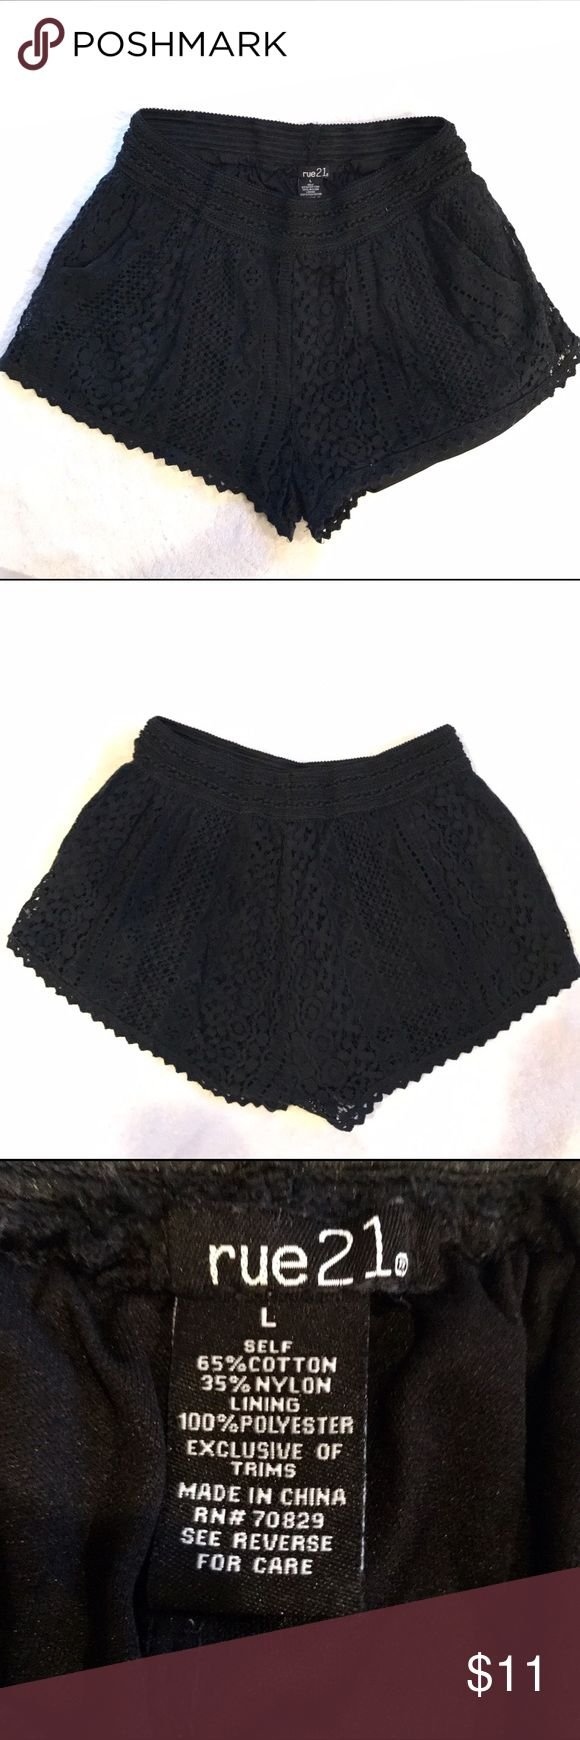 "Black crochet shorts Black lace crochet shorts size large could fit a medium. They are from rue21 and have a elastic waistband. Waist 25"", rise 10"", hip 38"". Rue21 Shorts"